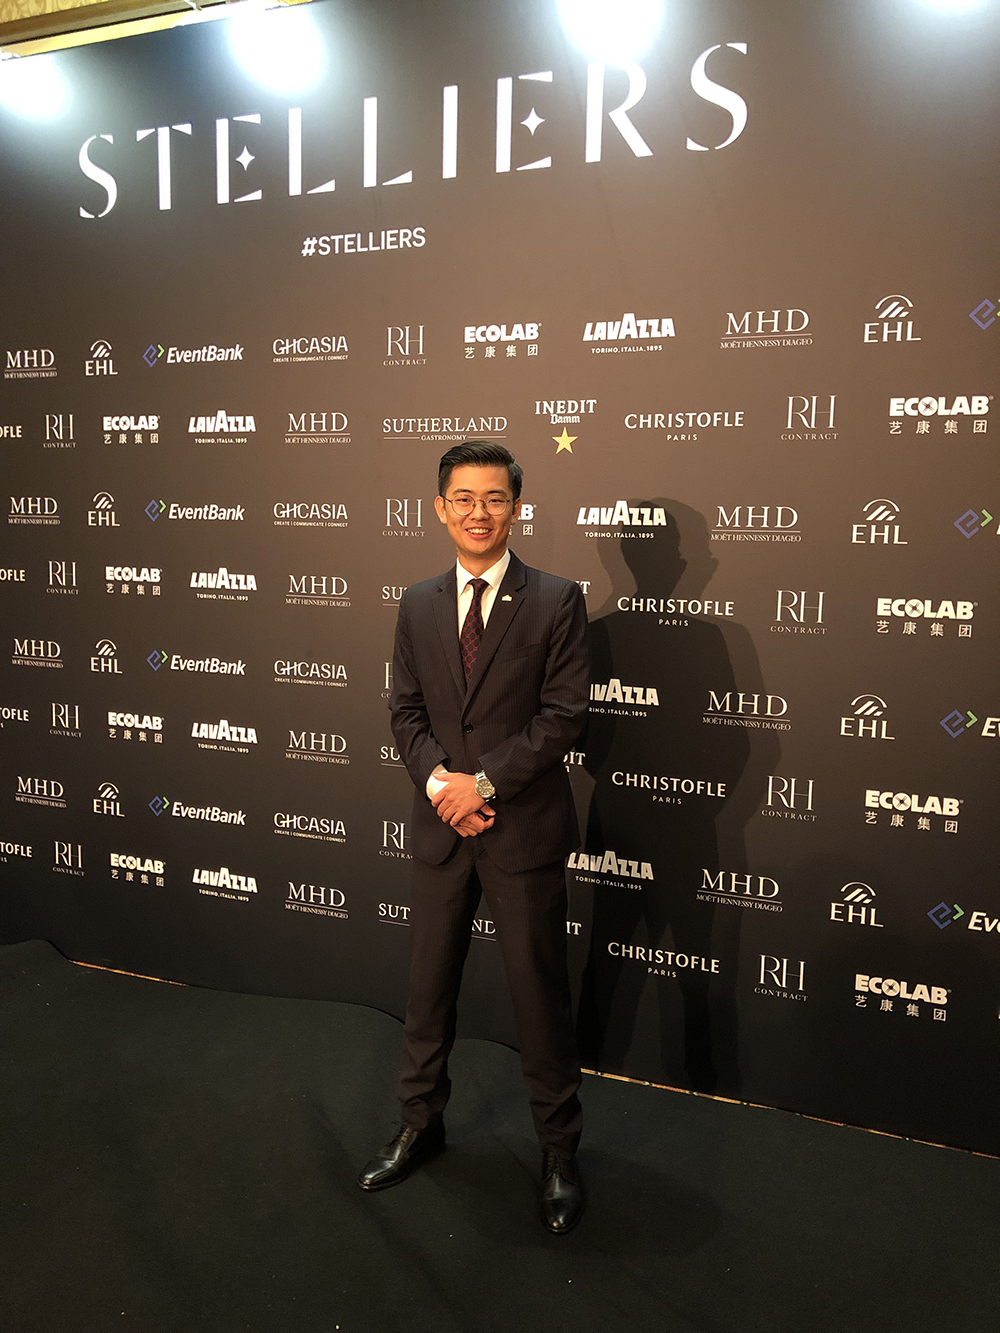 Les Roches Jin Jiang Alumnus Makes it to the Finals of the 2019 Stelliers Awards